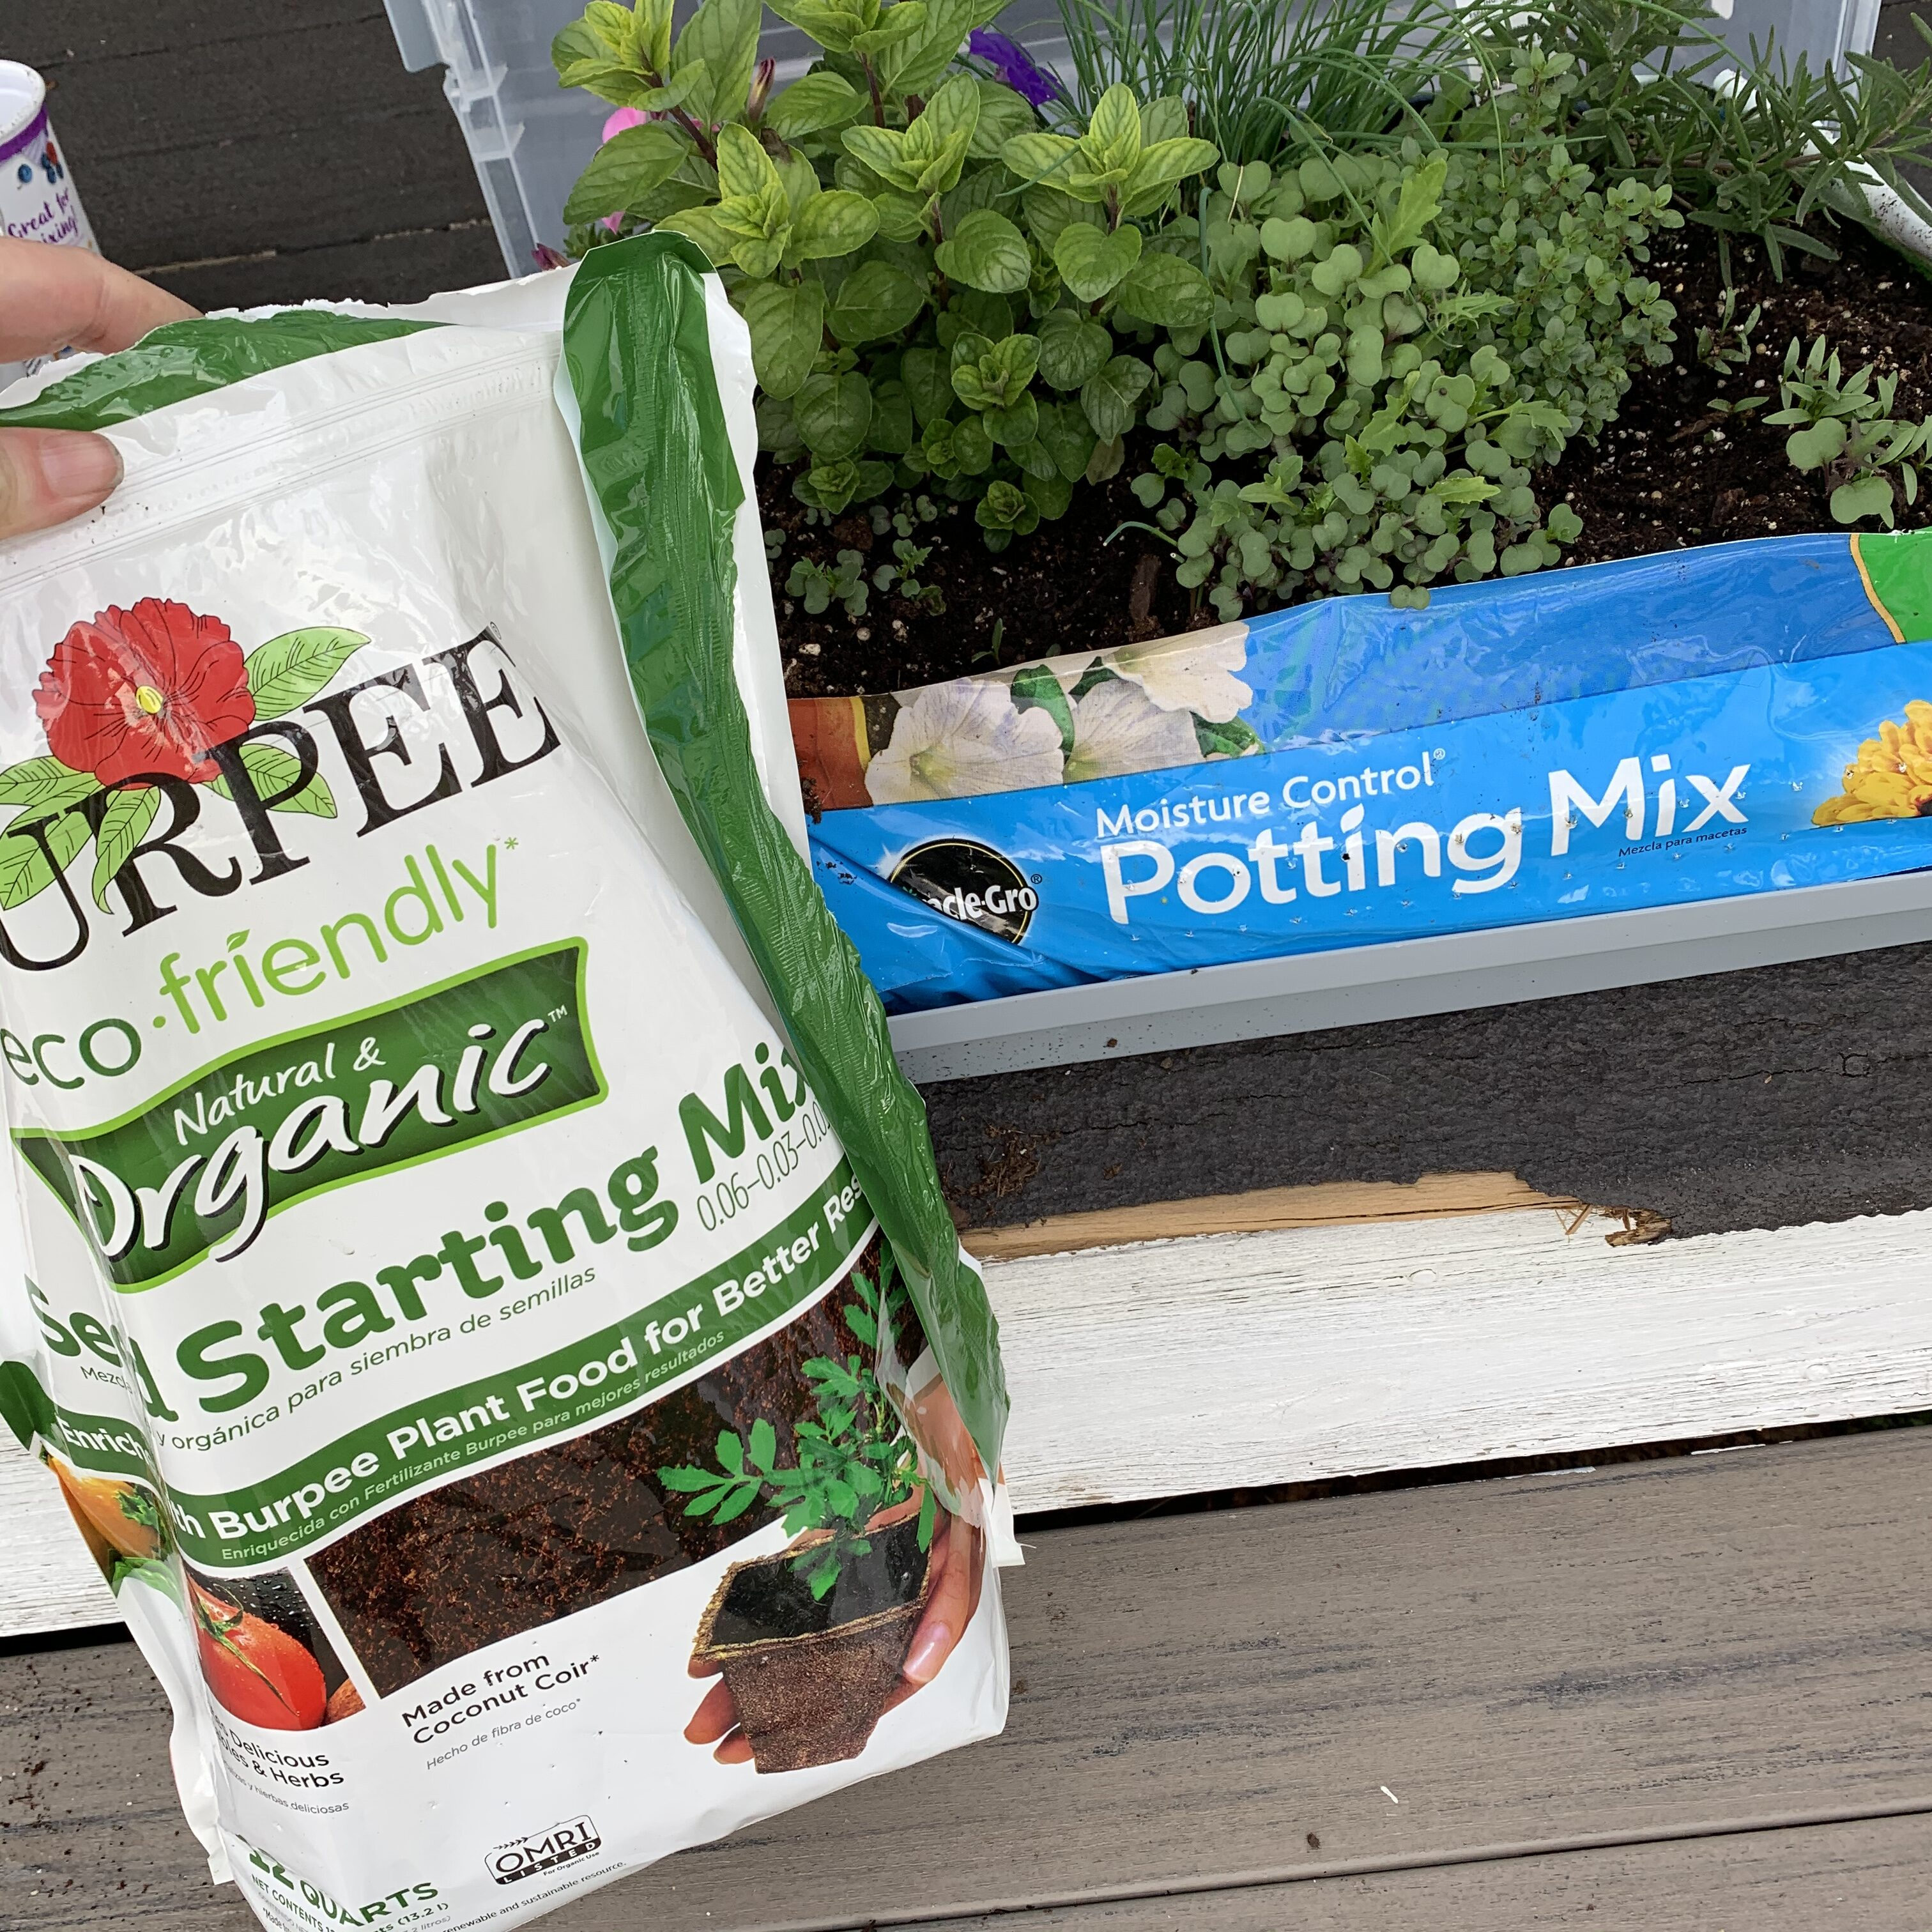 7BBBA1AB A805 46C7 8A31 068EA1B2E2AD Comparing Burpee Organic Seed Starting Mix vs Miracle Gro Moisture Control Potting Mix for transplanted tomato seedlings